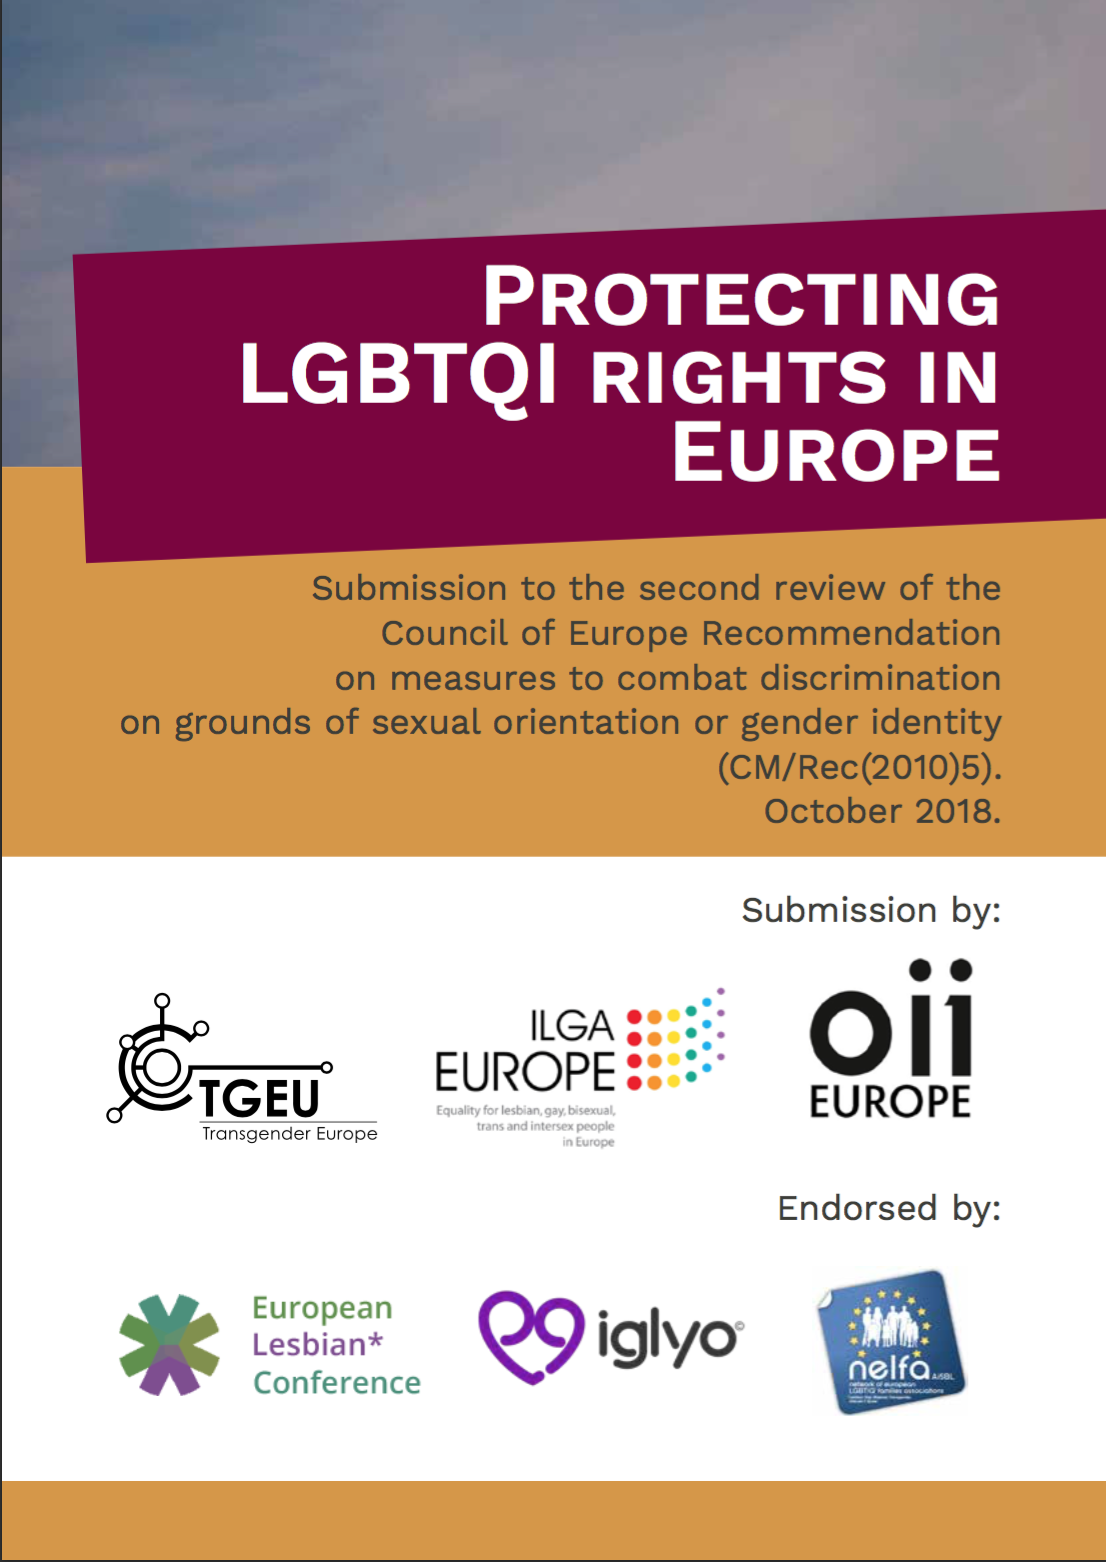 Protecting LGBTQI rights in Europe. Submission to CM/Rec(2010)5